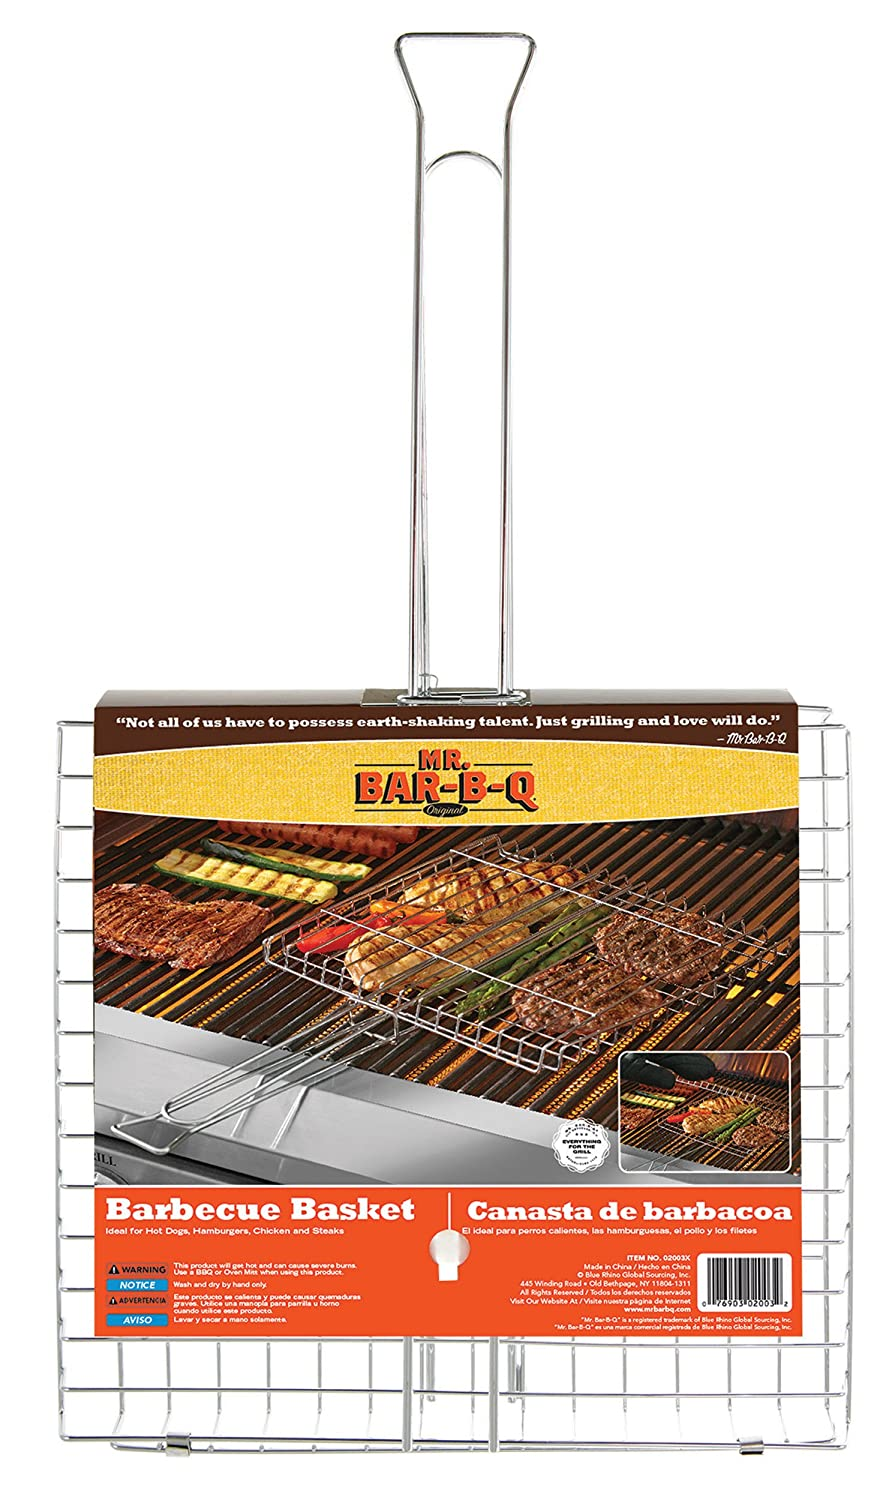 Amazon.com : Mr. Bar-B-Q 02003X Chrome Grilling Basket : Garden & Outdoor